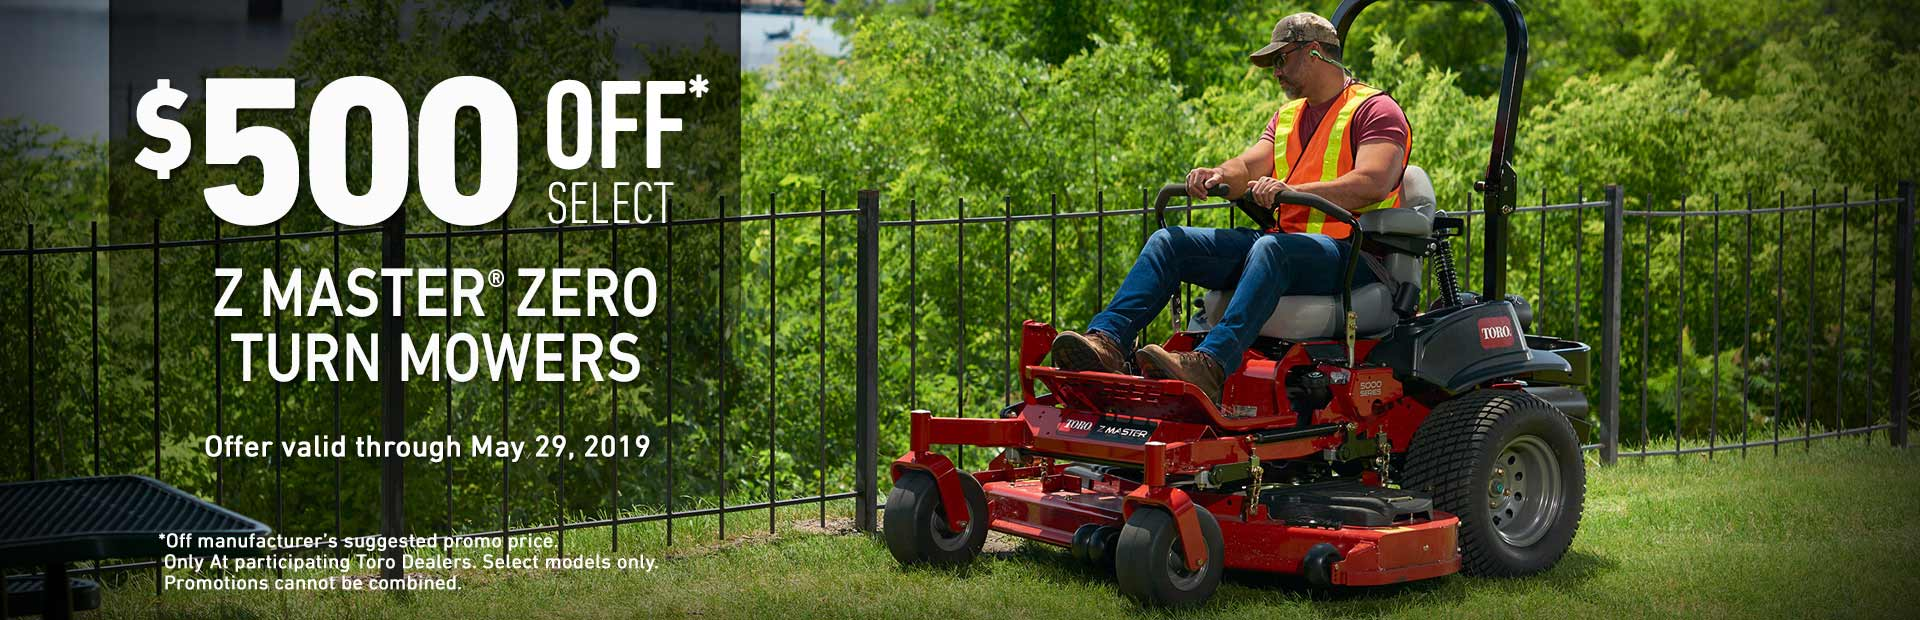 Toro® - $500 off select Z Master Zero Turn Mowers. Offer valid through May 29, 2019.